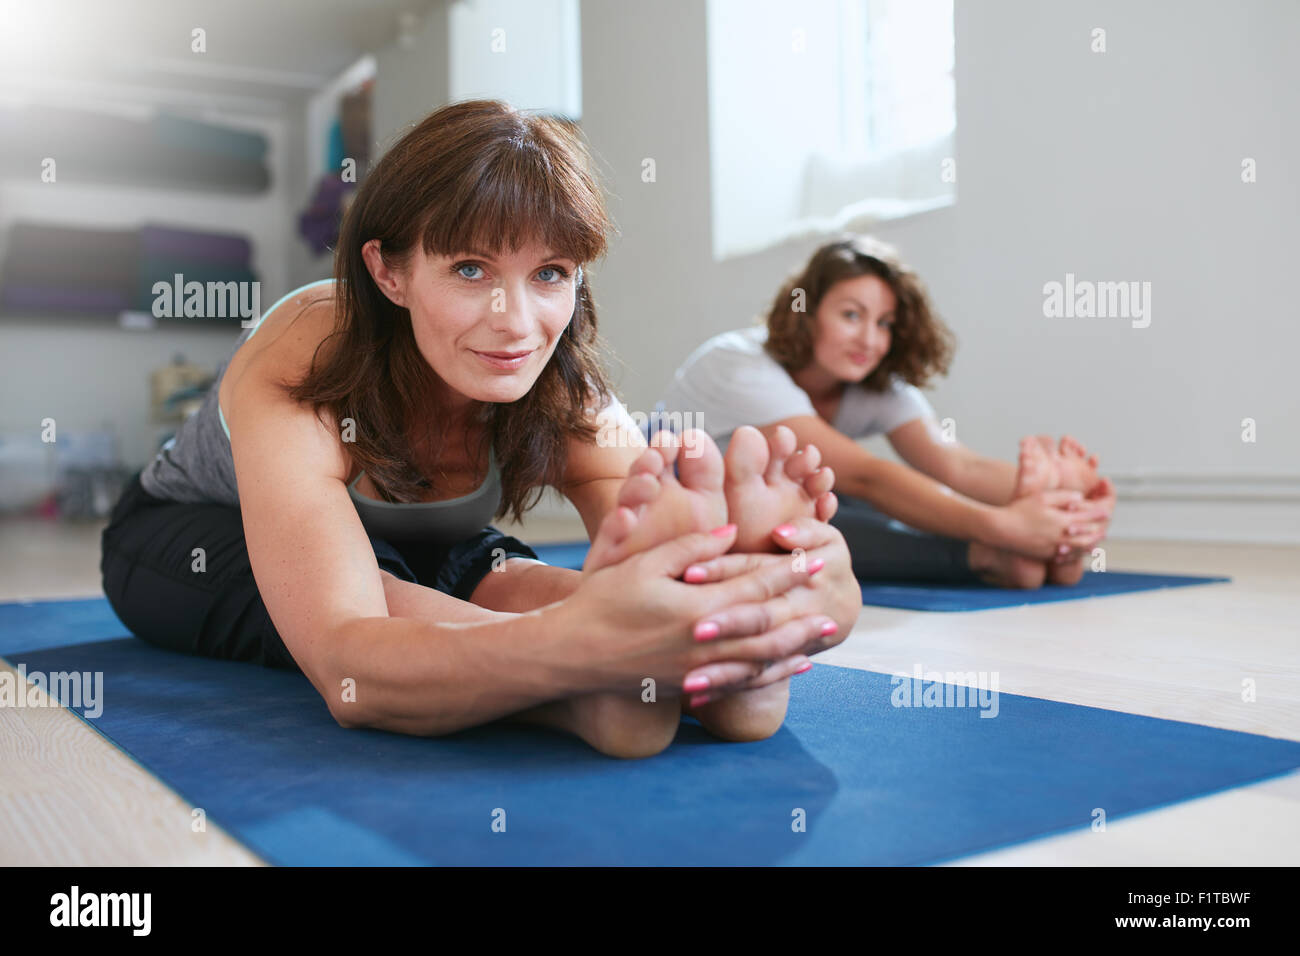 Women doing yoga together at gym, practicing paschimottanasana pose. Fitness female seated forward bend pose during Stock Photo